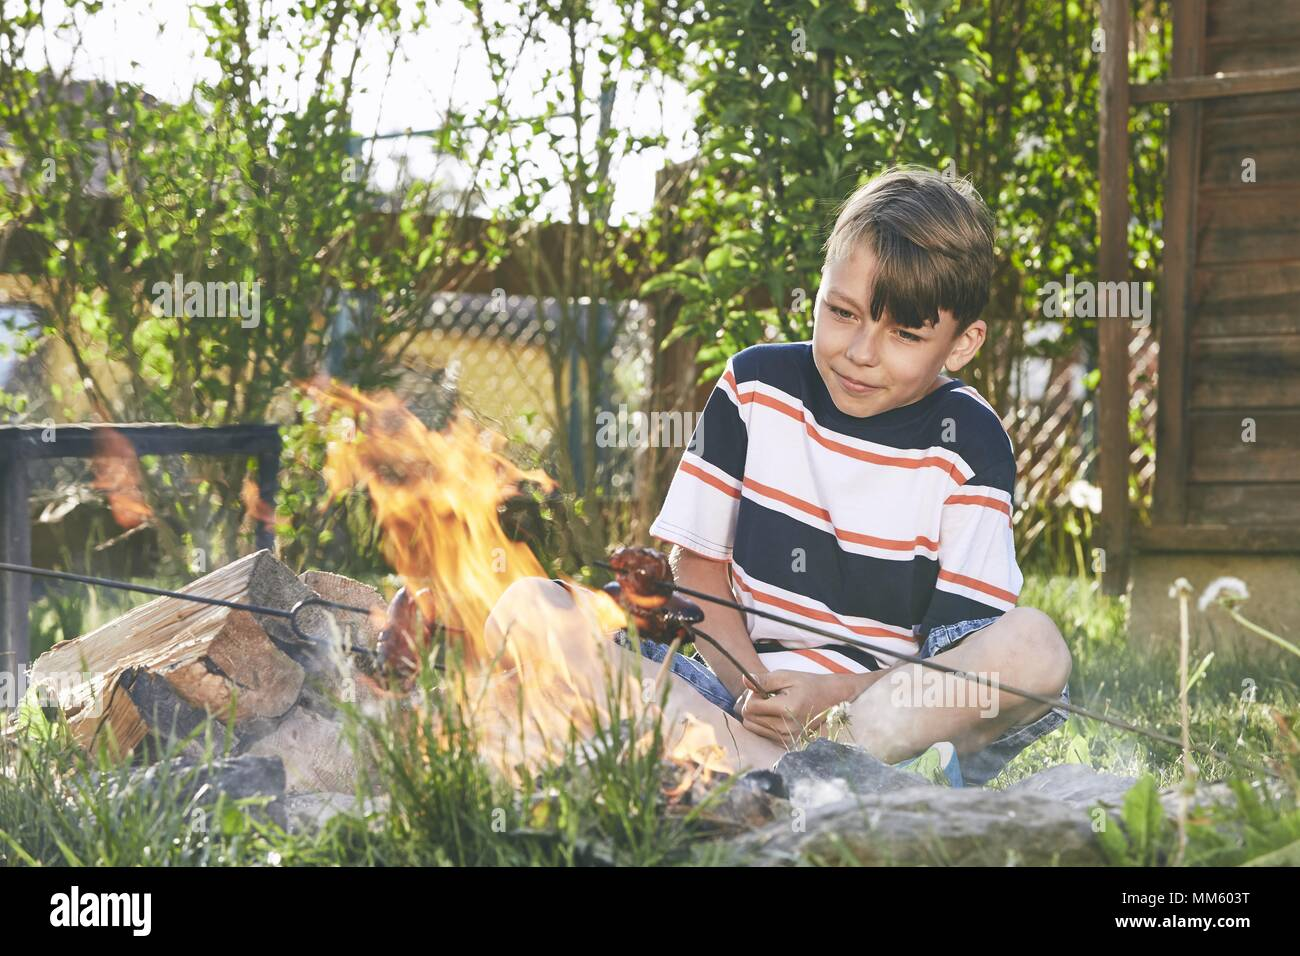 Children enjoy campfire. Boy toasting sausages on the garden. - Stock Image